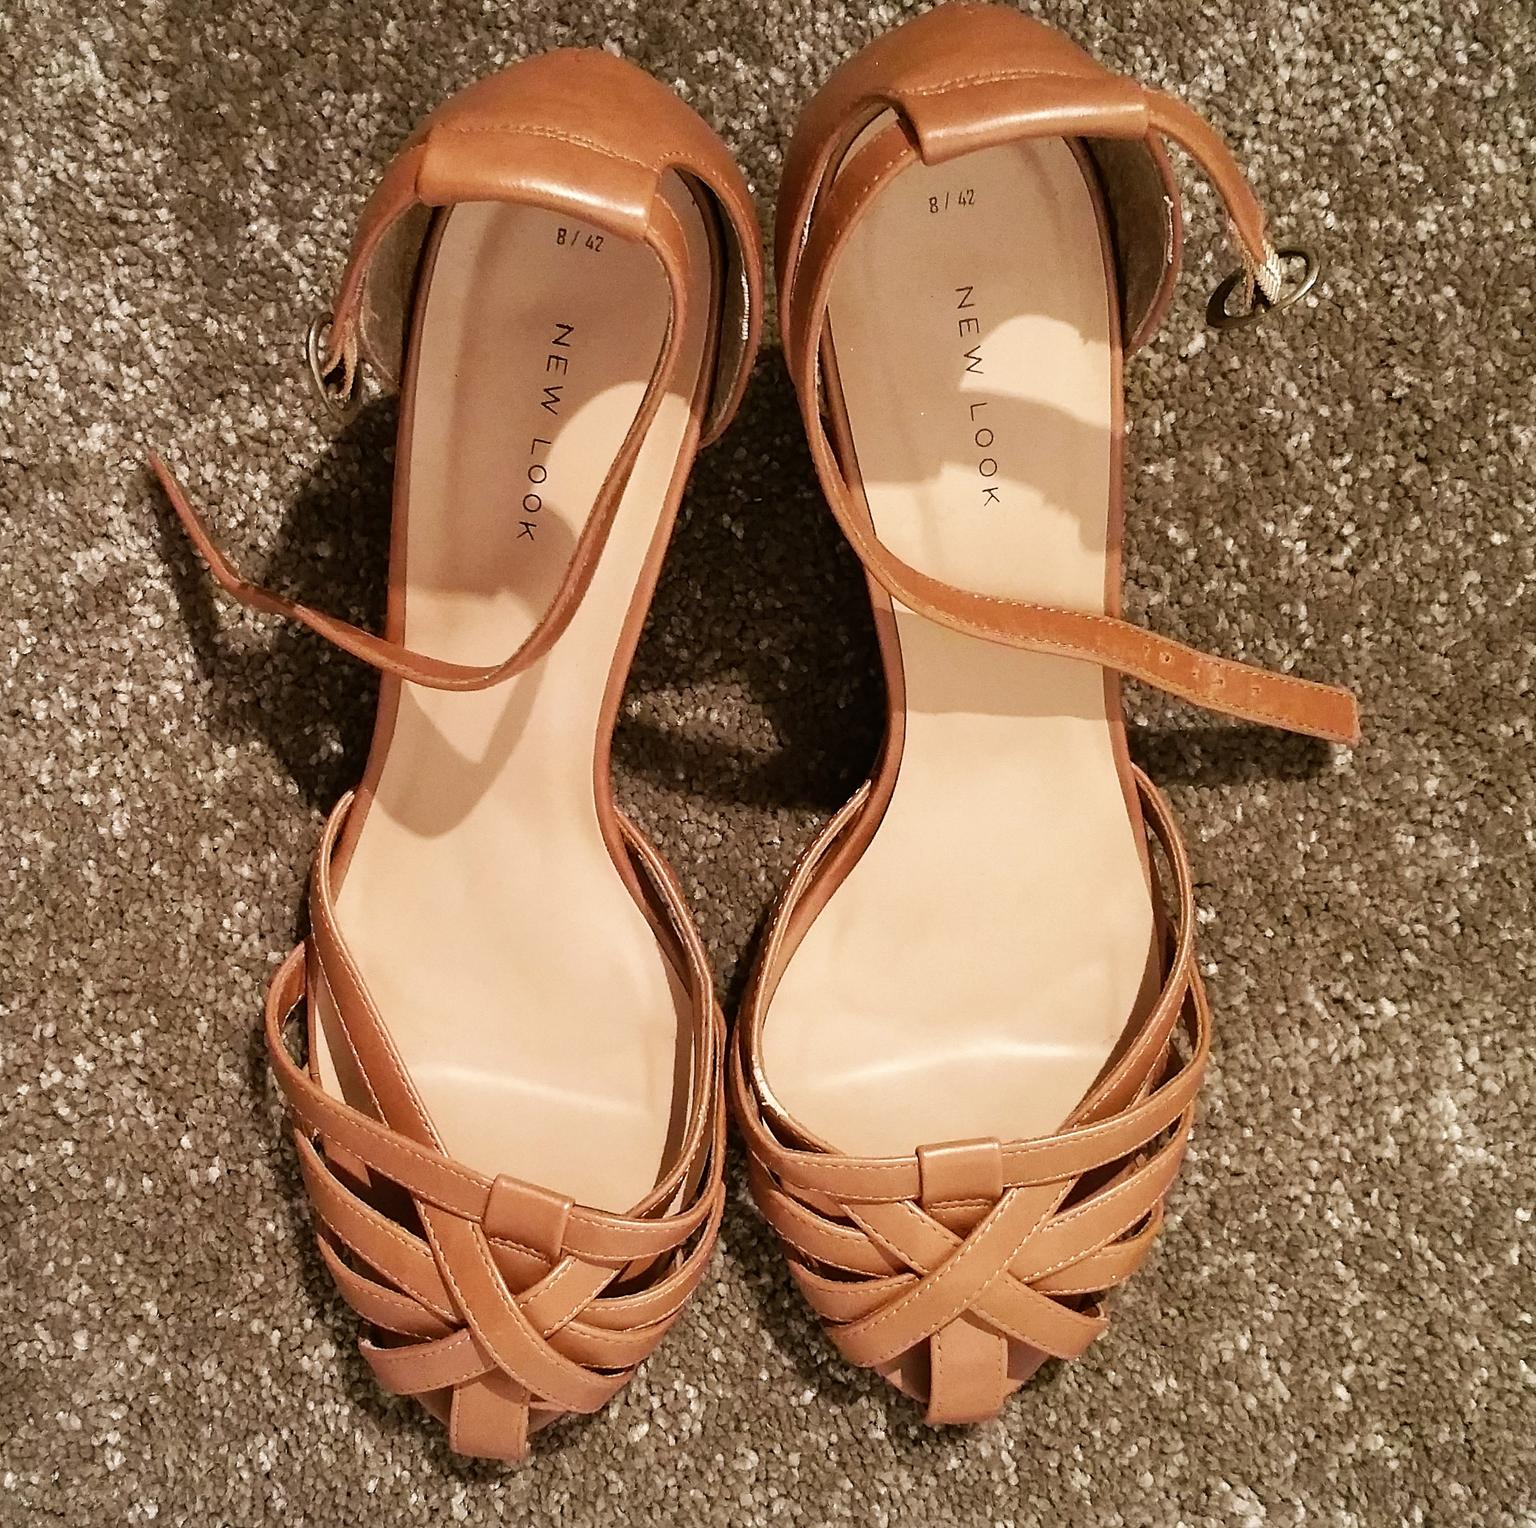 96148e8e4a5 New Look Tan Wedge Heel Caged Sandals